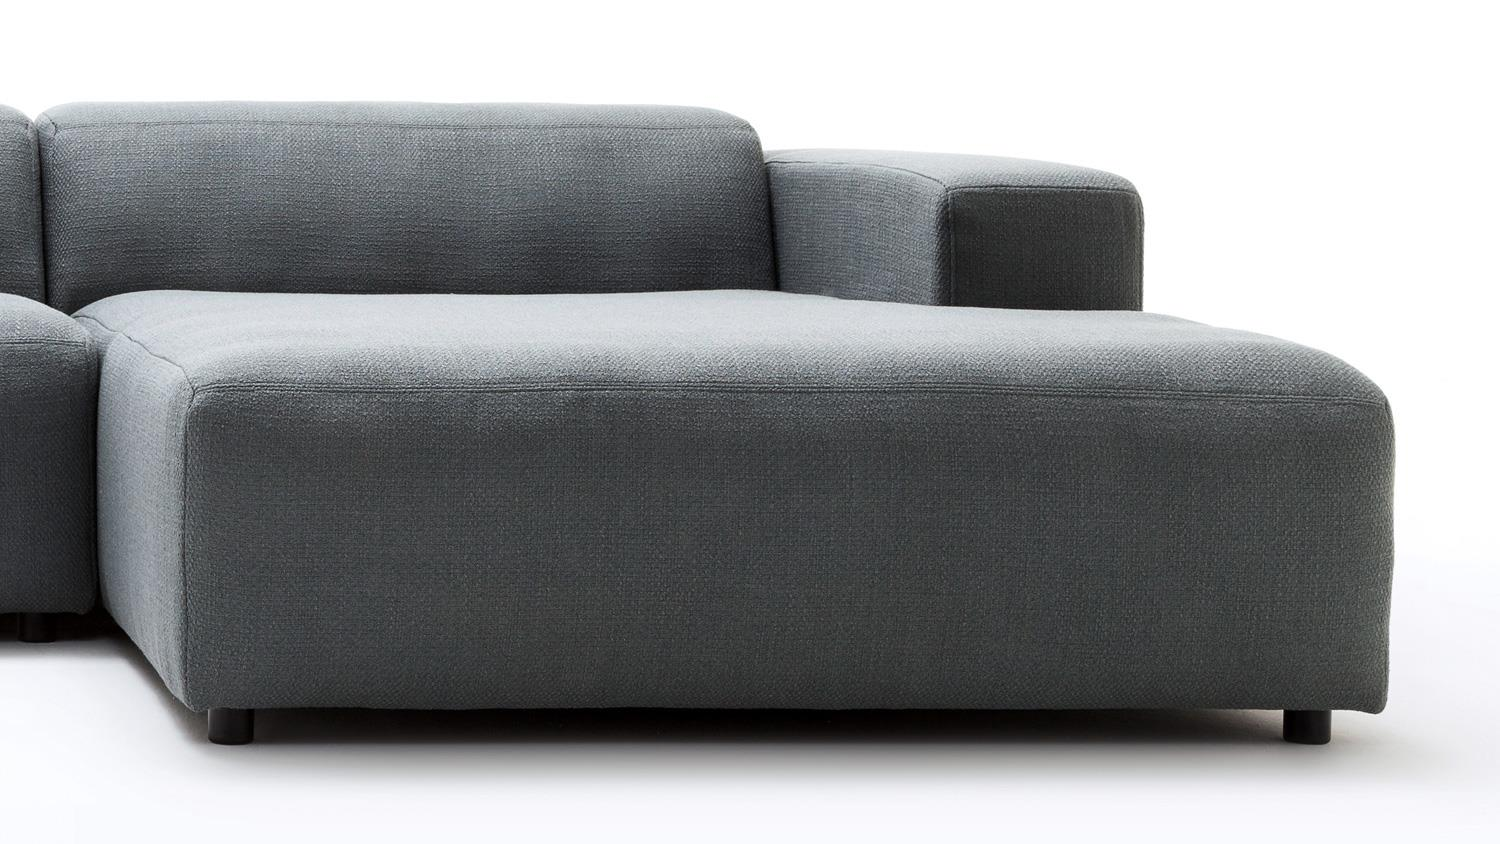 h lsta sofa von rolf benz ecksofa 432 stoff anthrazit grau. Black Bedroom Furniture Sets. Home Design Ideas